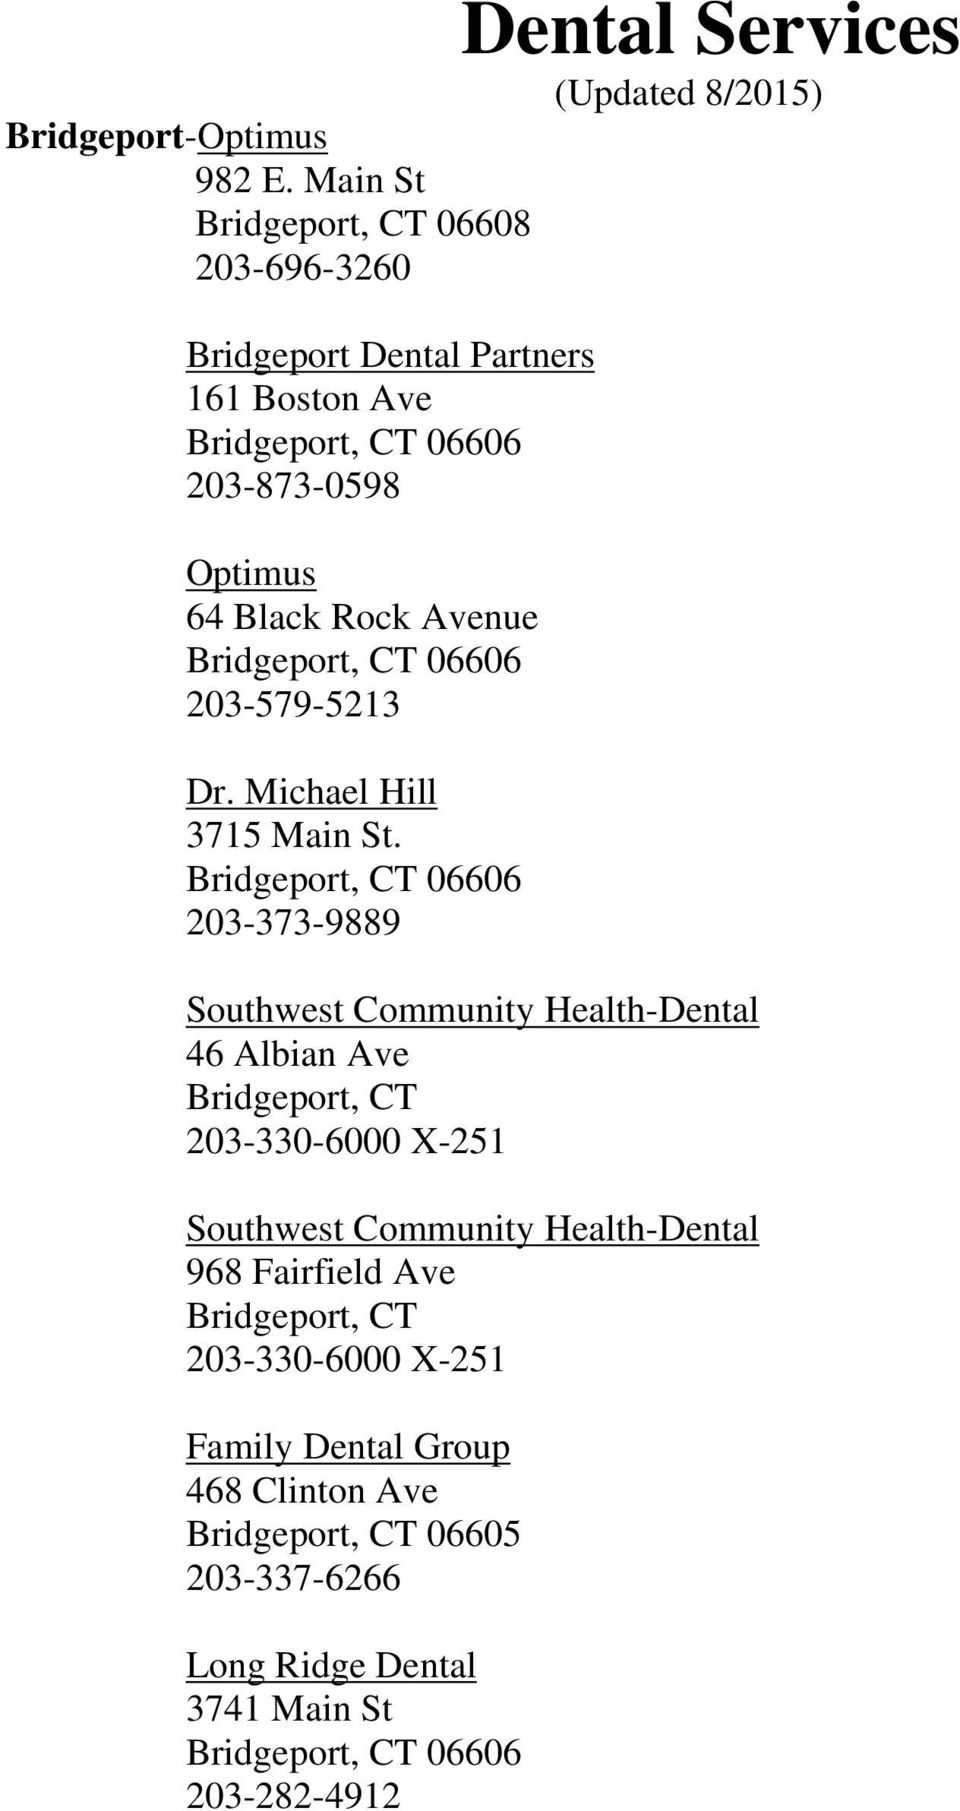 Bridgeport, CT 06606 203-579-5213 Dr. Michael Hill 3715 Main St.